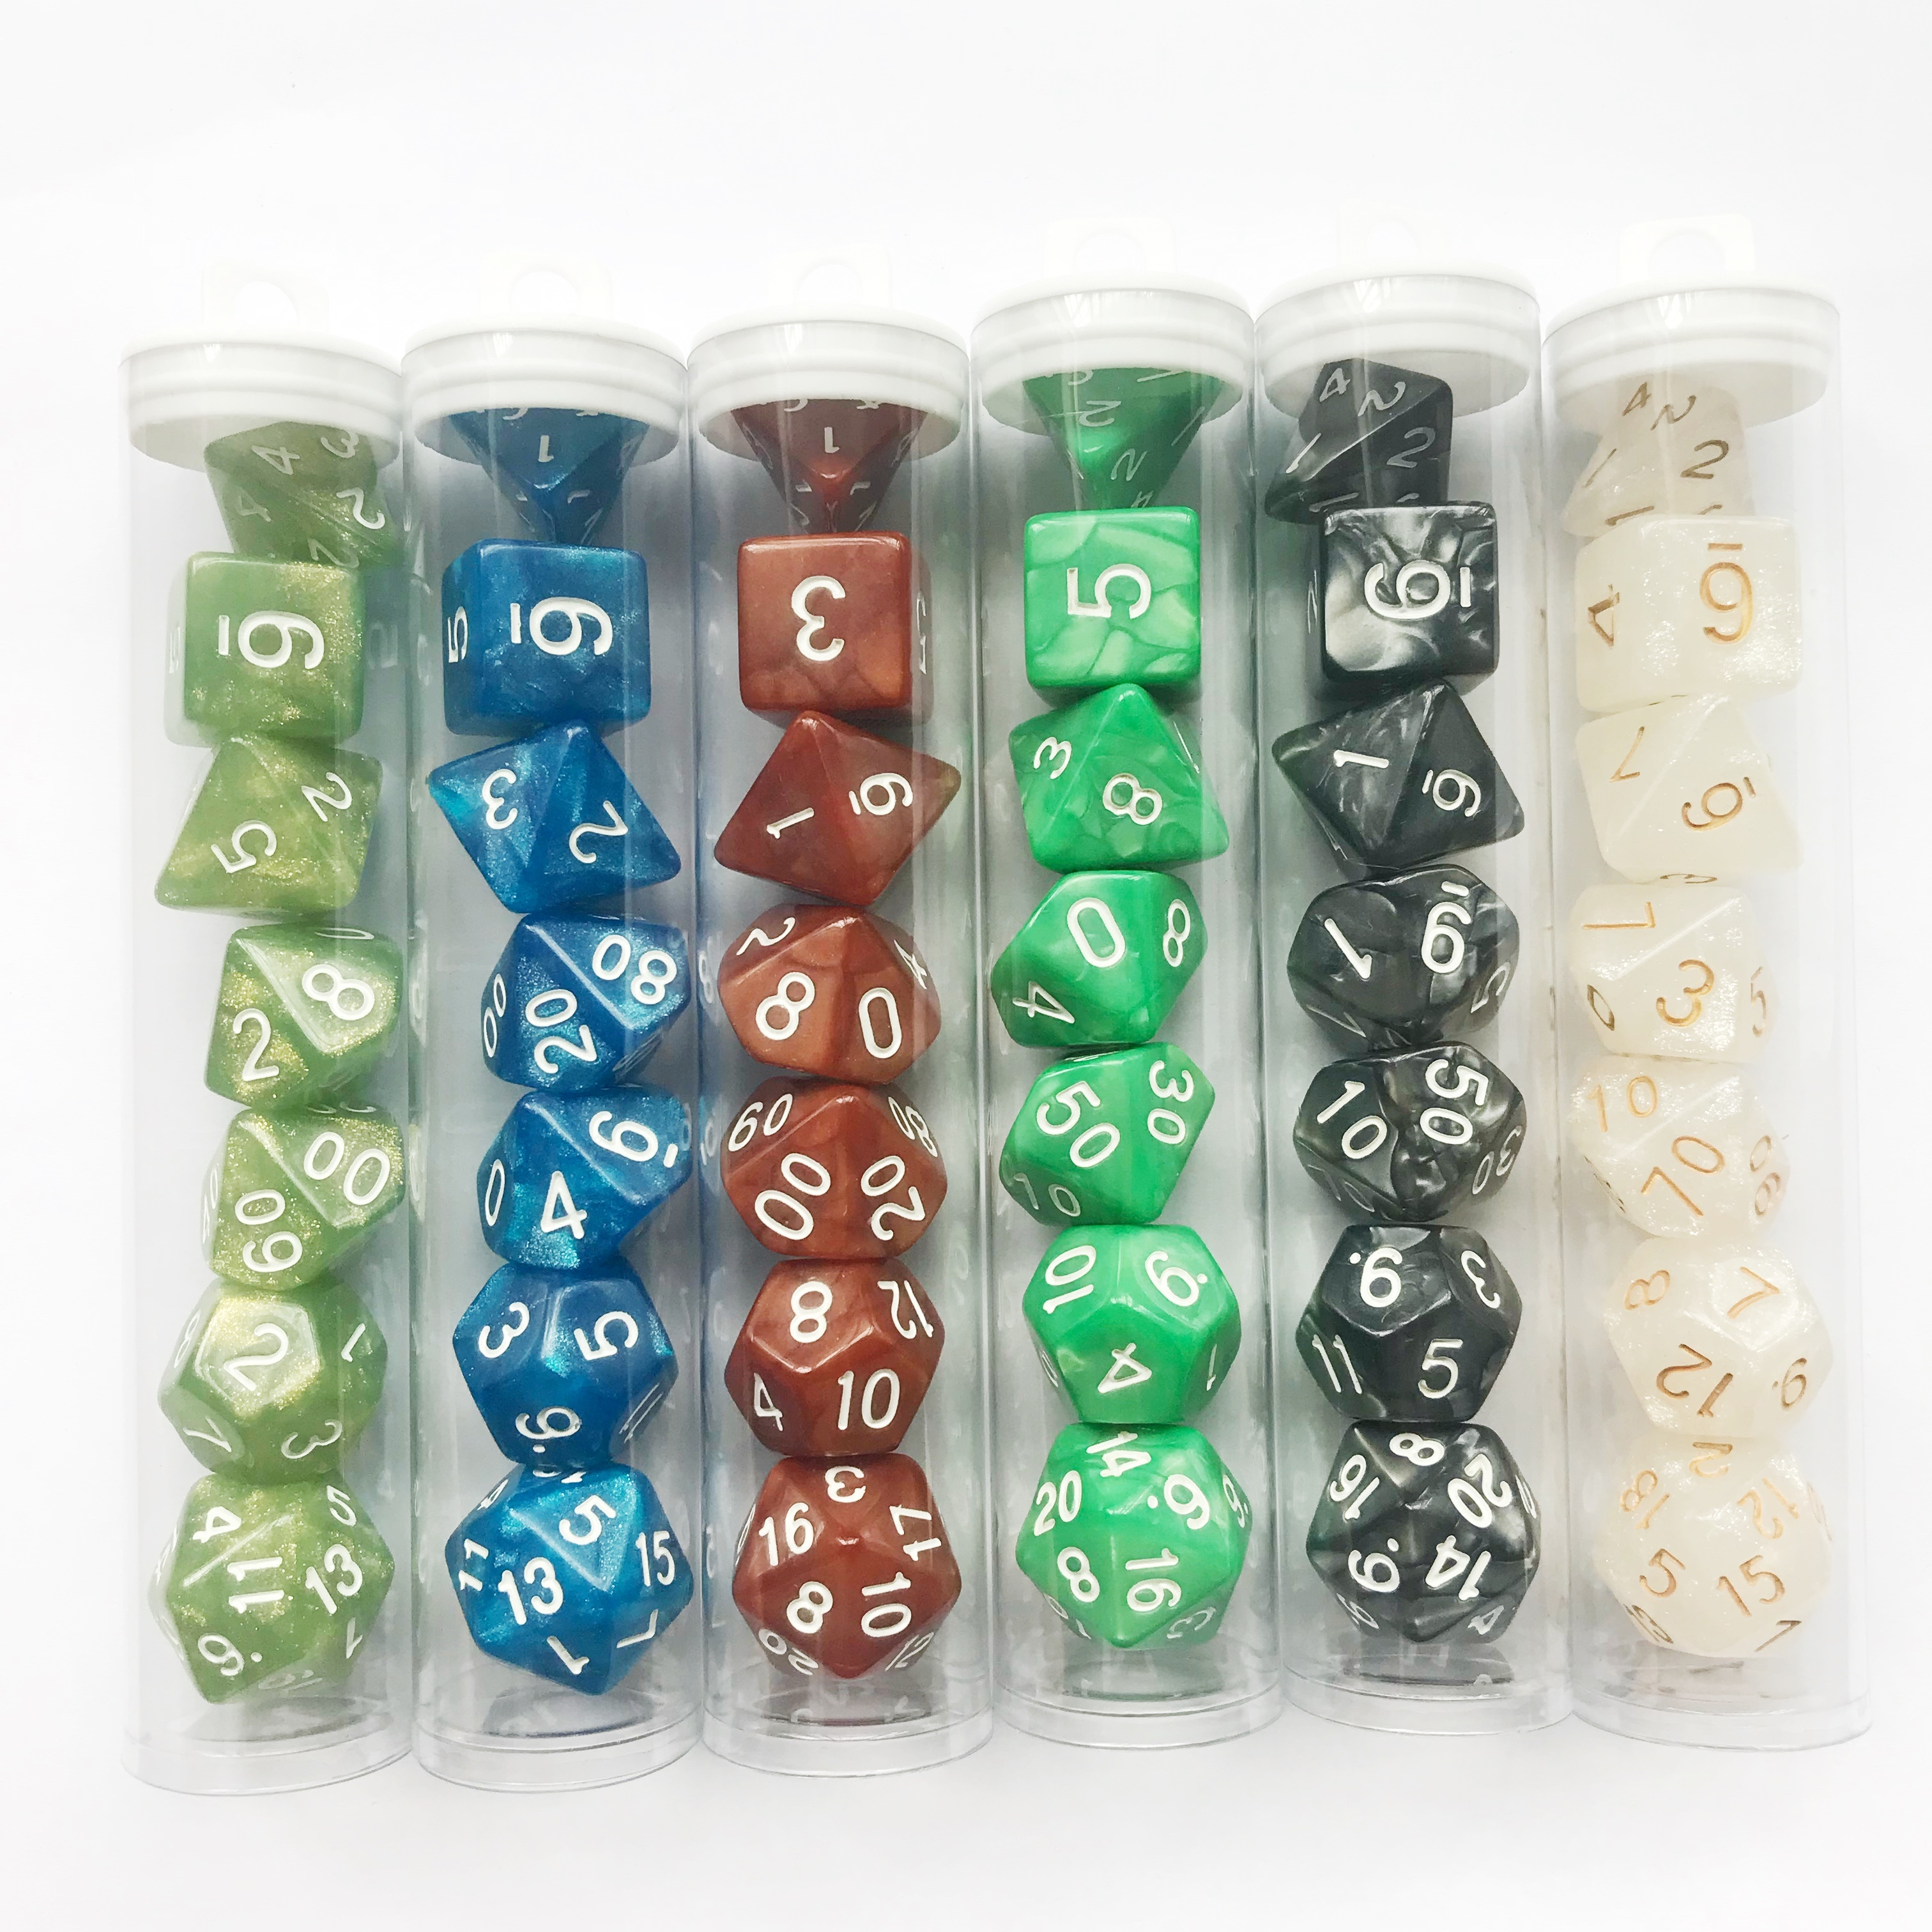 7 pcs/set Desk Polyhedral Custom Dices 4/6/8/10/12/20 Pear Dice DND Acrylic Plastic in Tube Packaging Multi Sides Gaming, Color